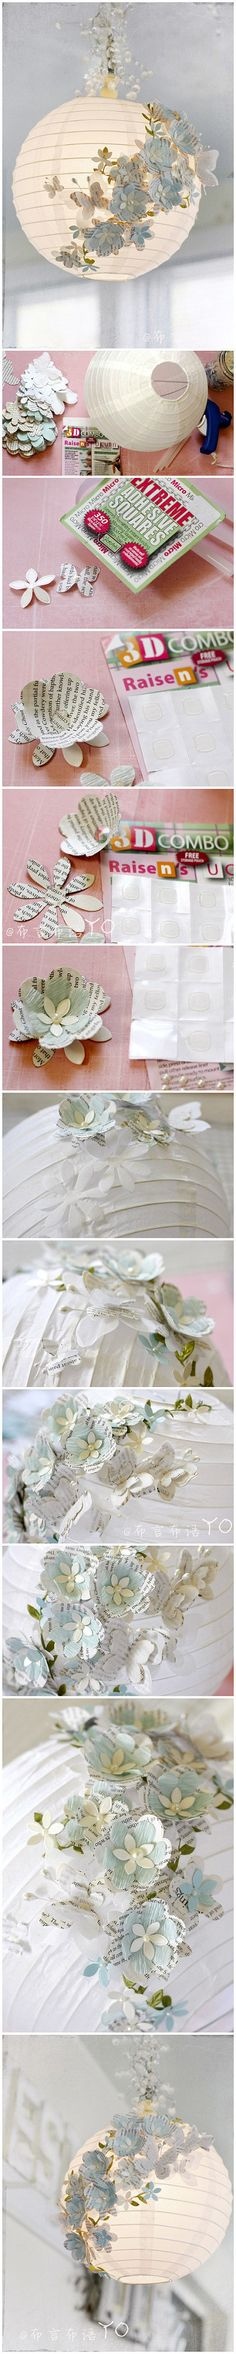 Delicate DIY Projects Ideas-homesthetics (2)